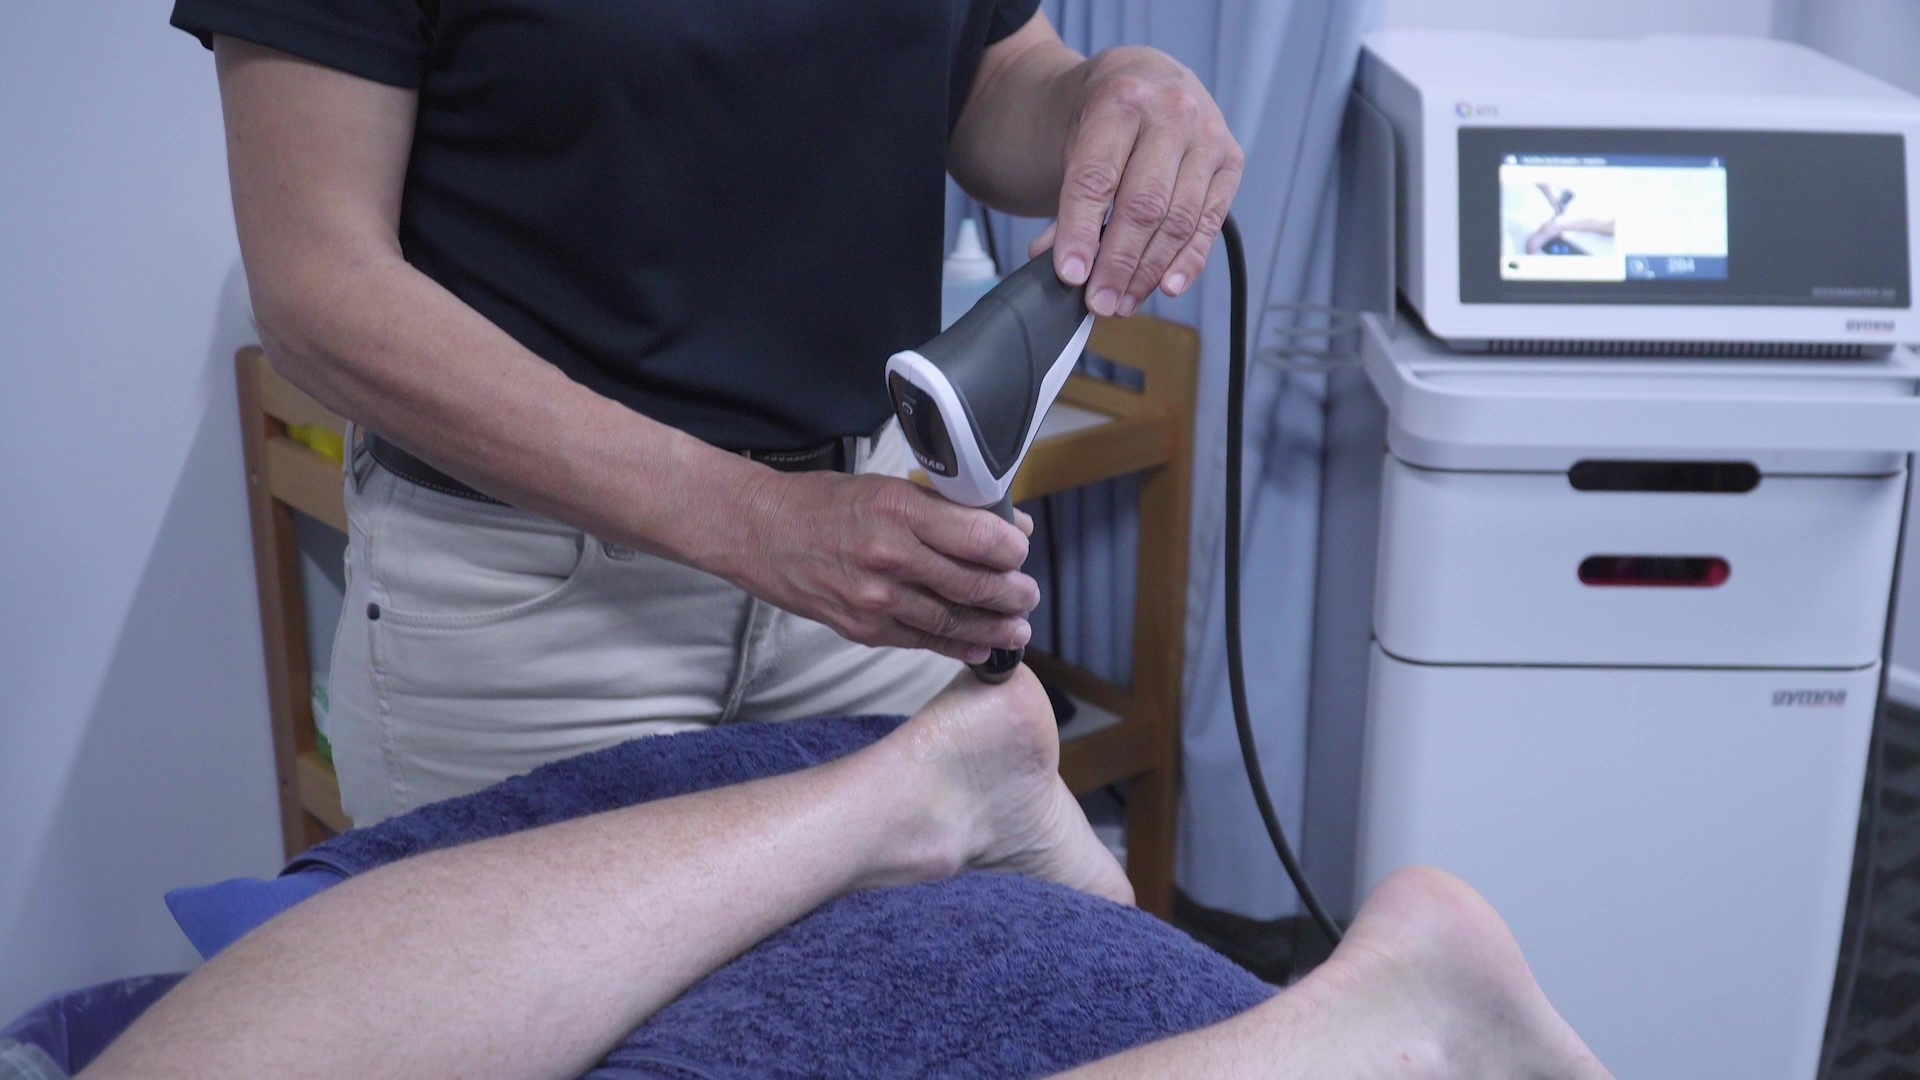 A physiotherapist providing shockwave therapy treatment to the heel of a patient who is laying on a treatment bed